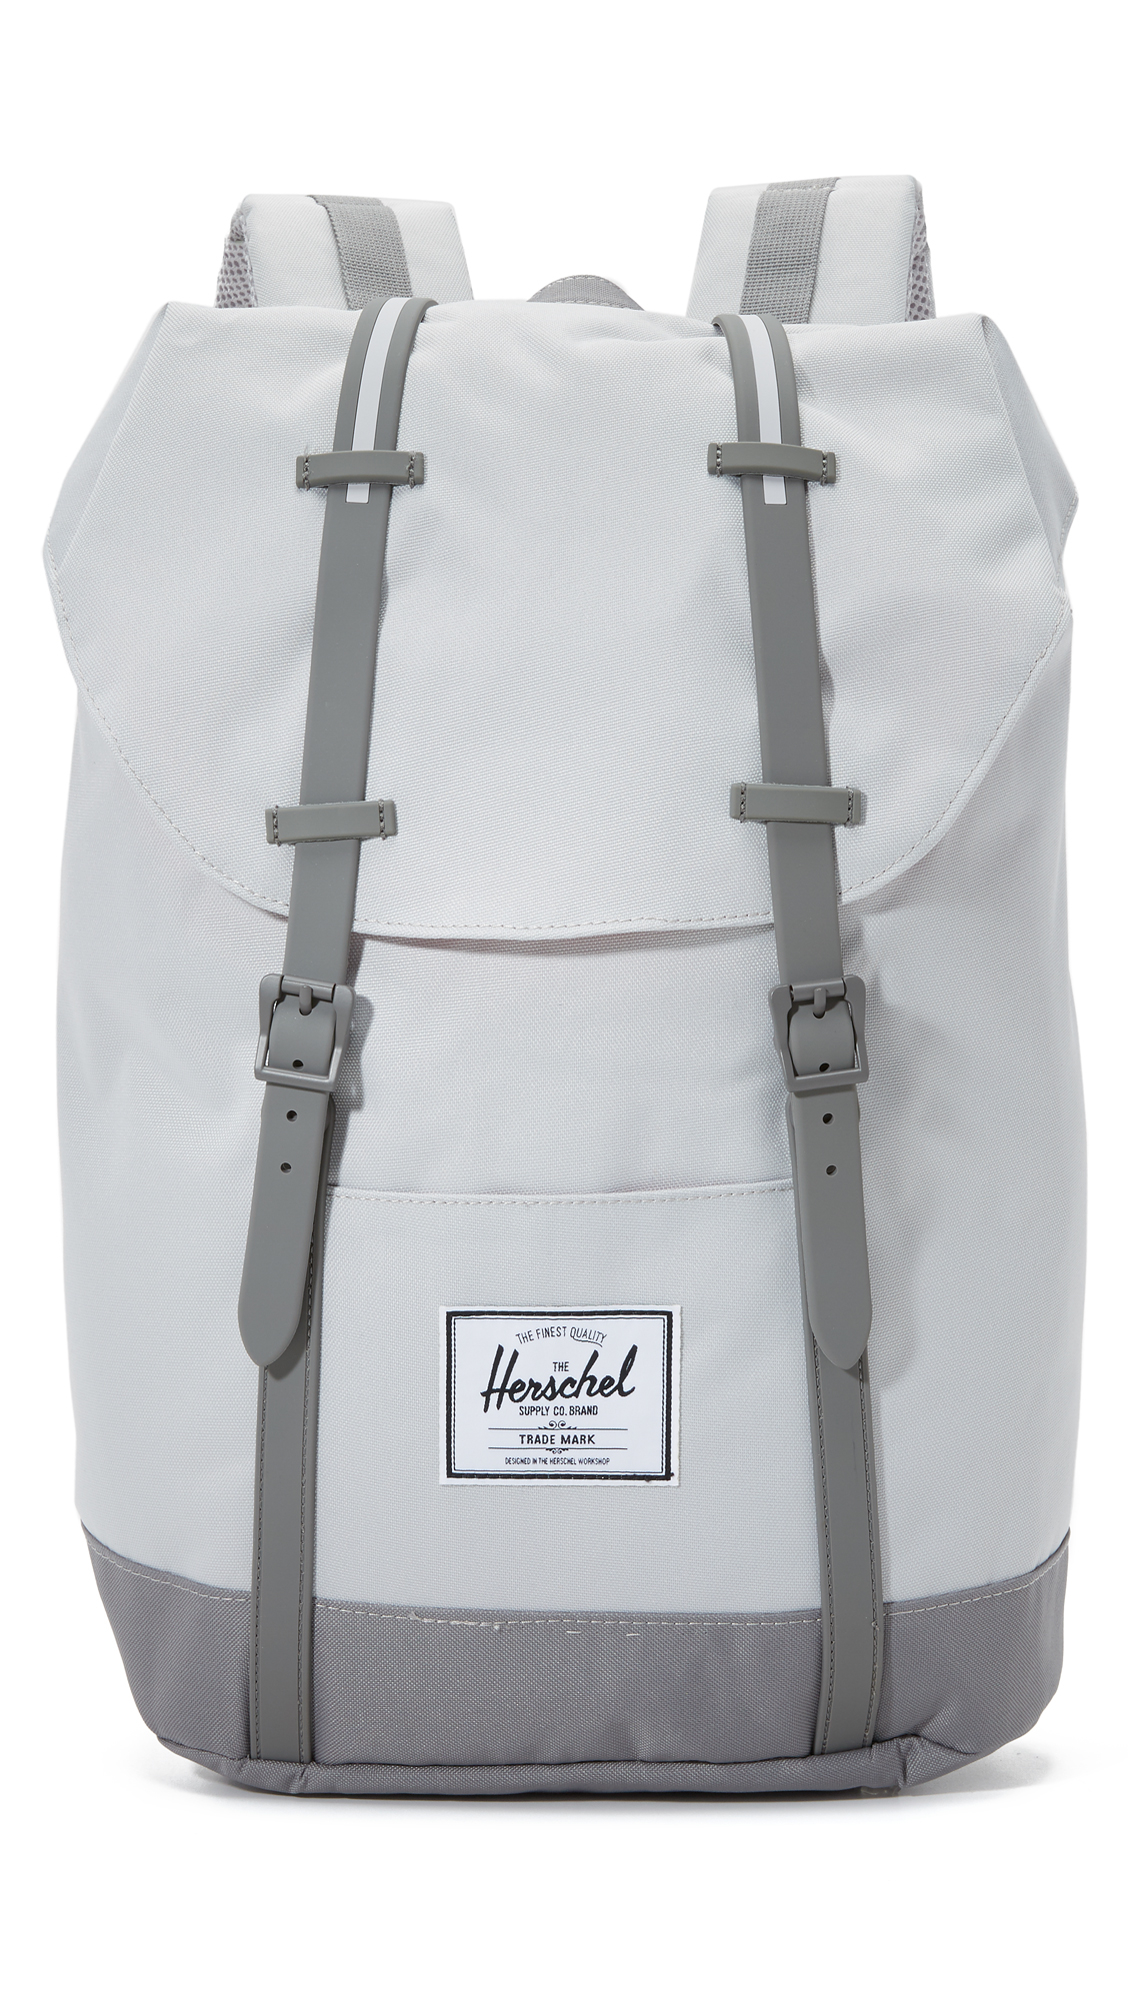 Lyst - Herschel Supply Co. Retreat Backpack in Gray for Men 11d69cdcc32e1